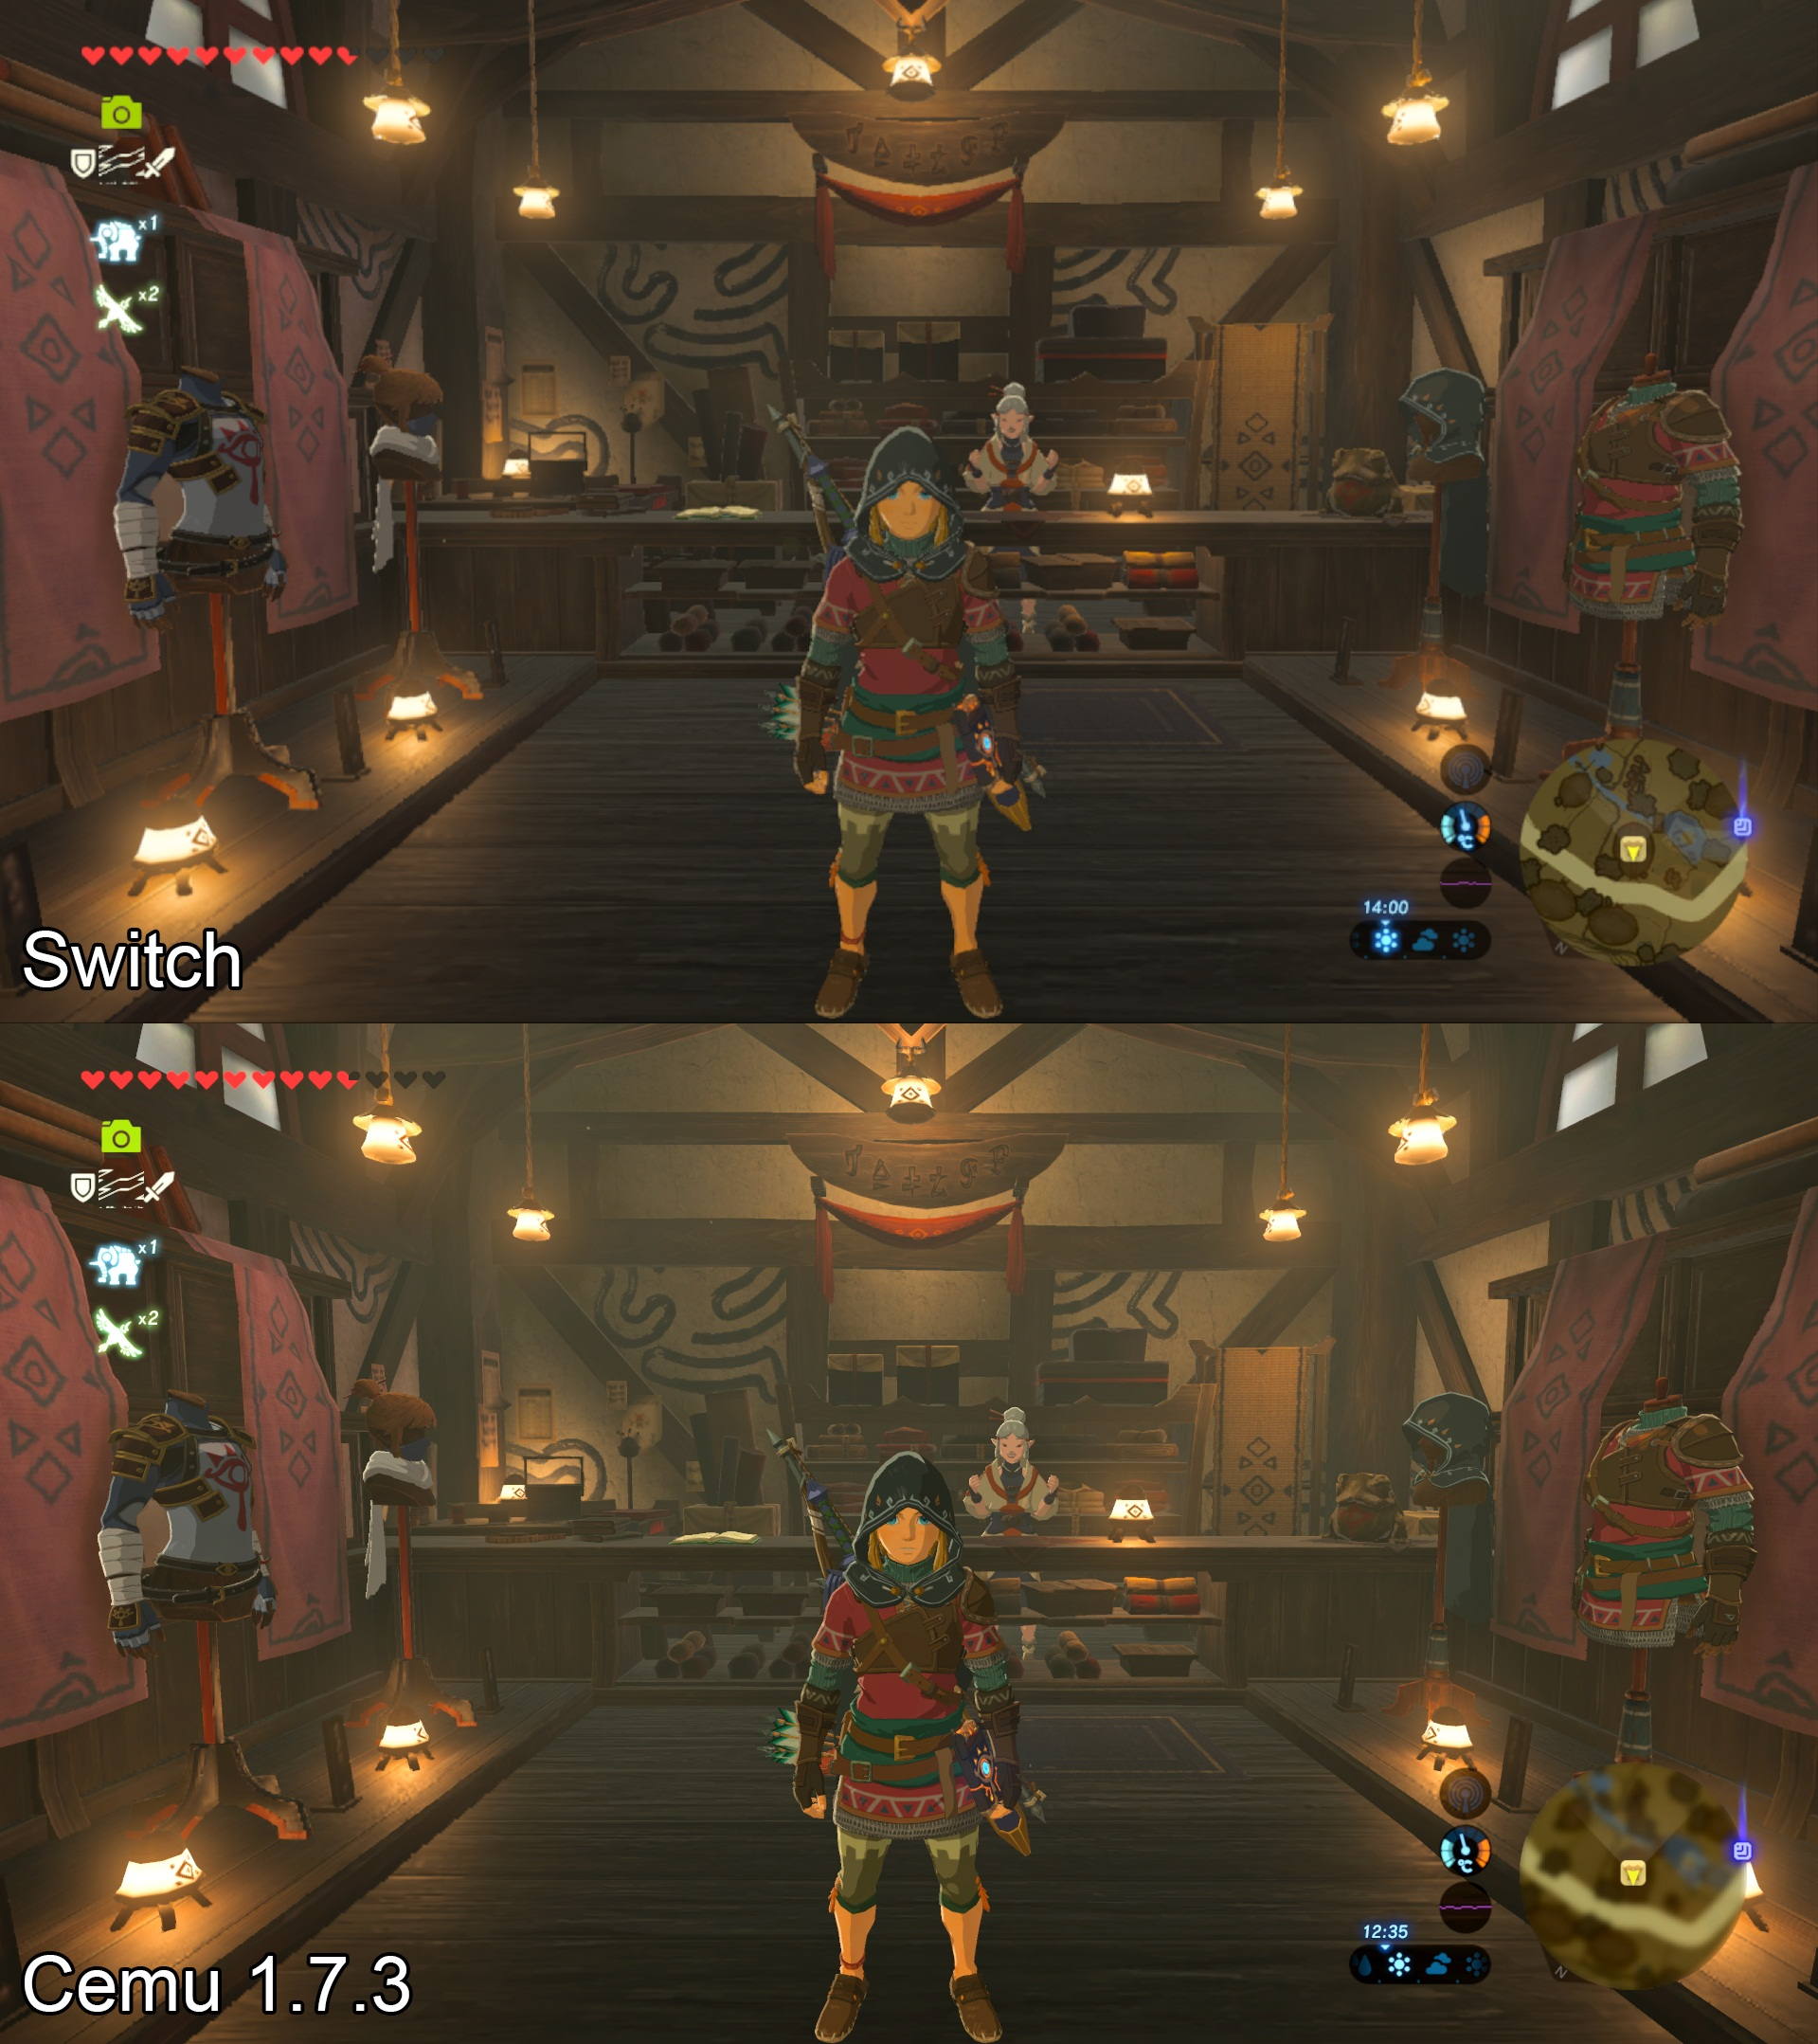 Zelda: Breath of the Wild PC vs Nintendo Switch Comparison